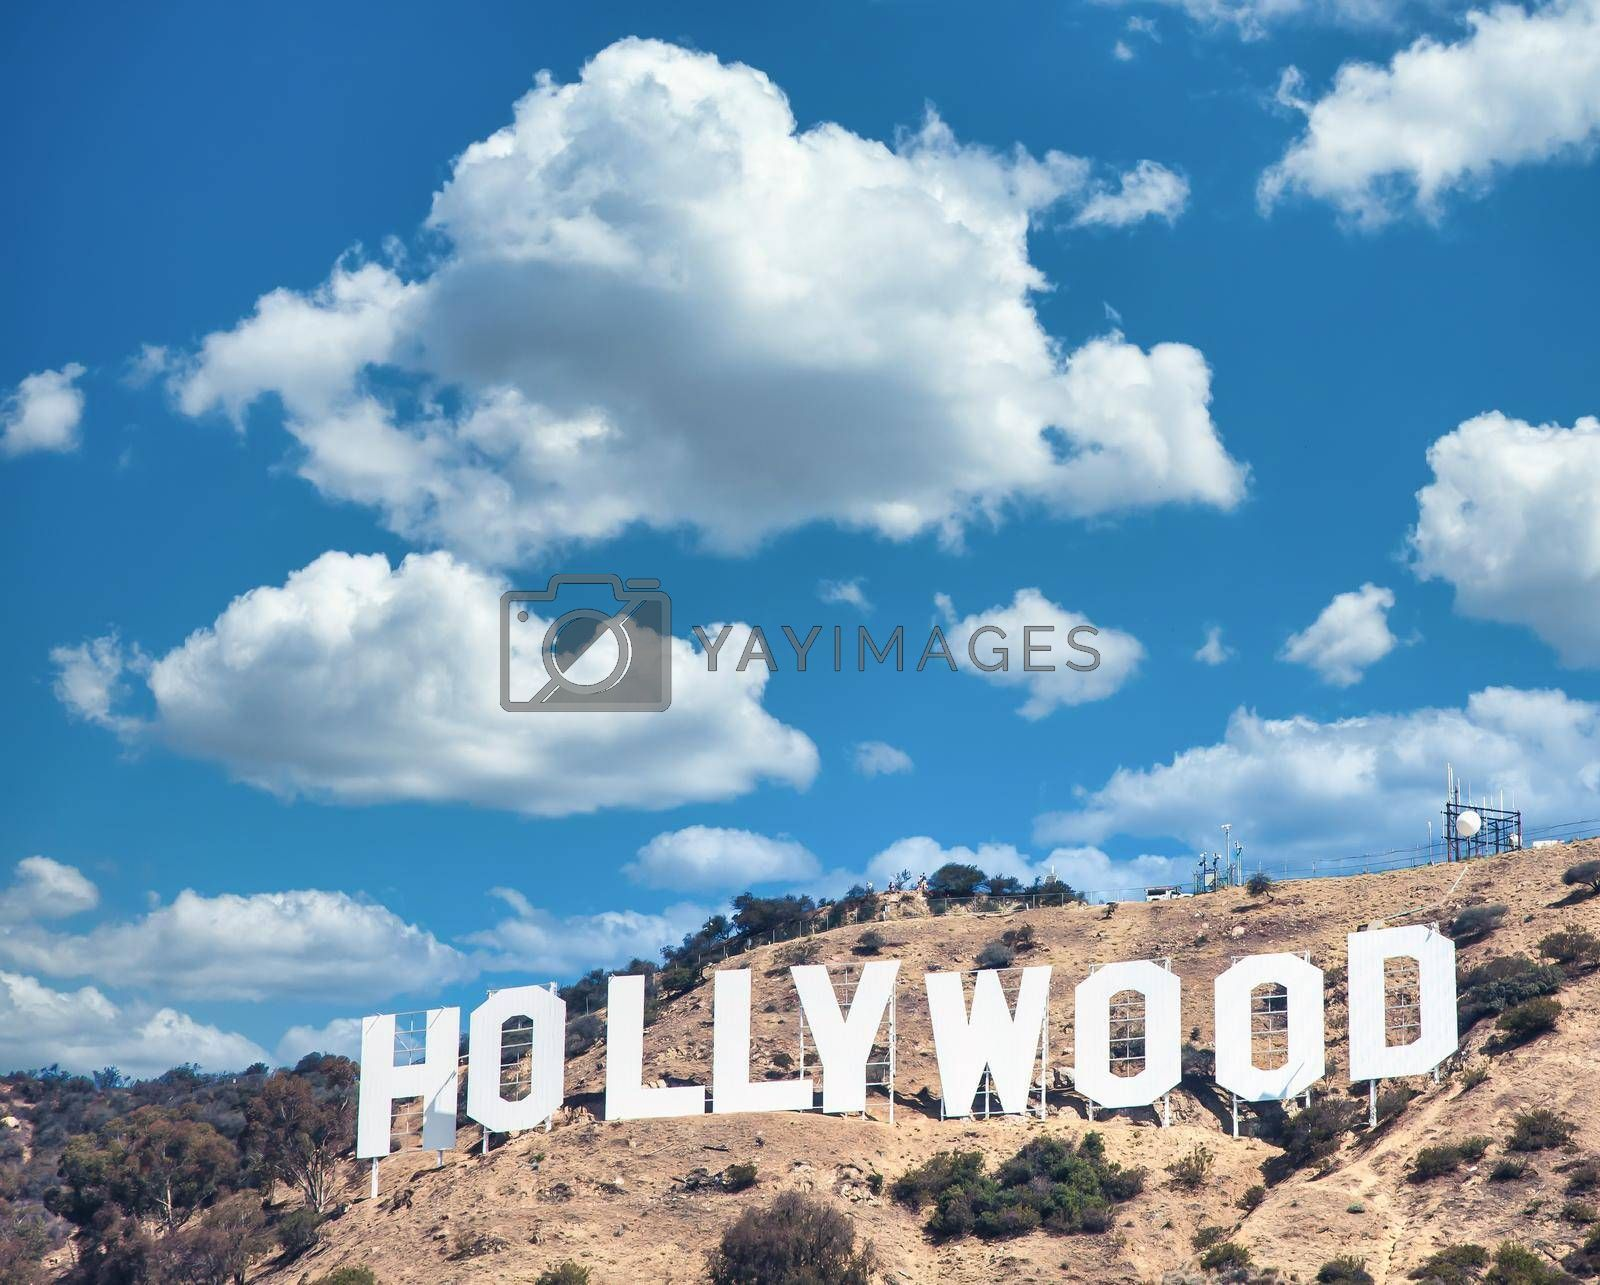 Royalty free image of Hollywood sign in Los Angeles on blue sky by Perseomedusa